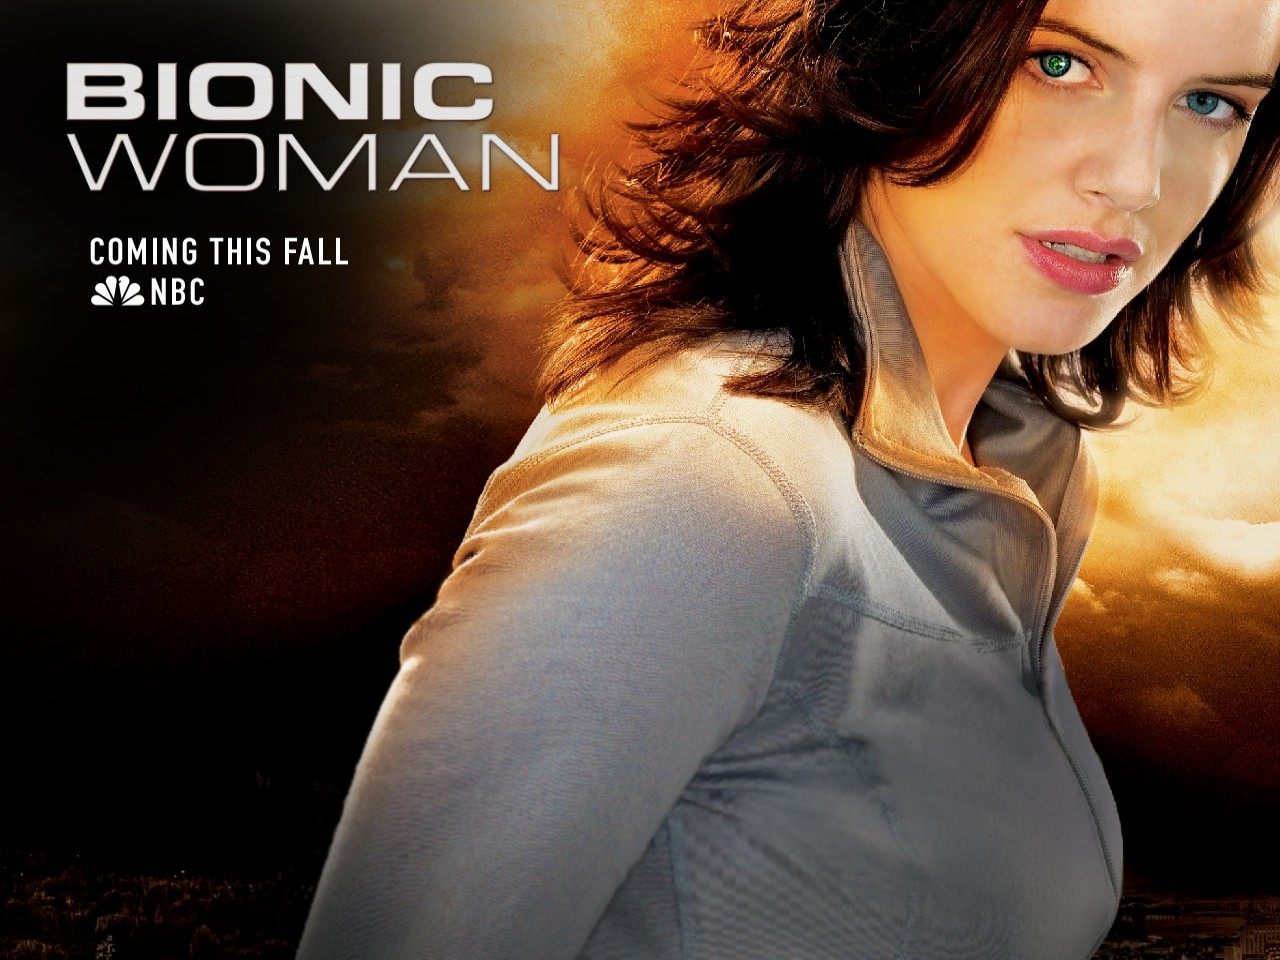 Michelle Ryan in un wallpaper della serie Bionic Woman